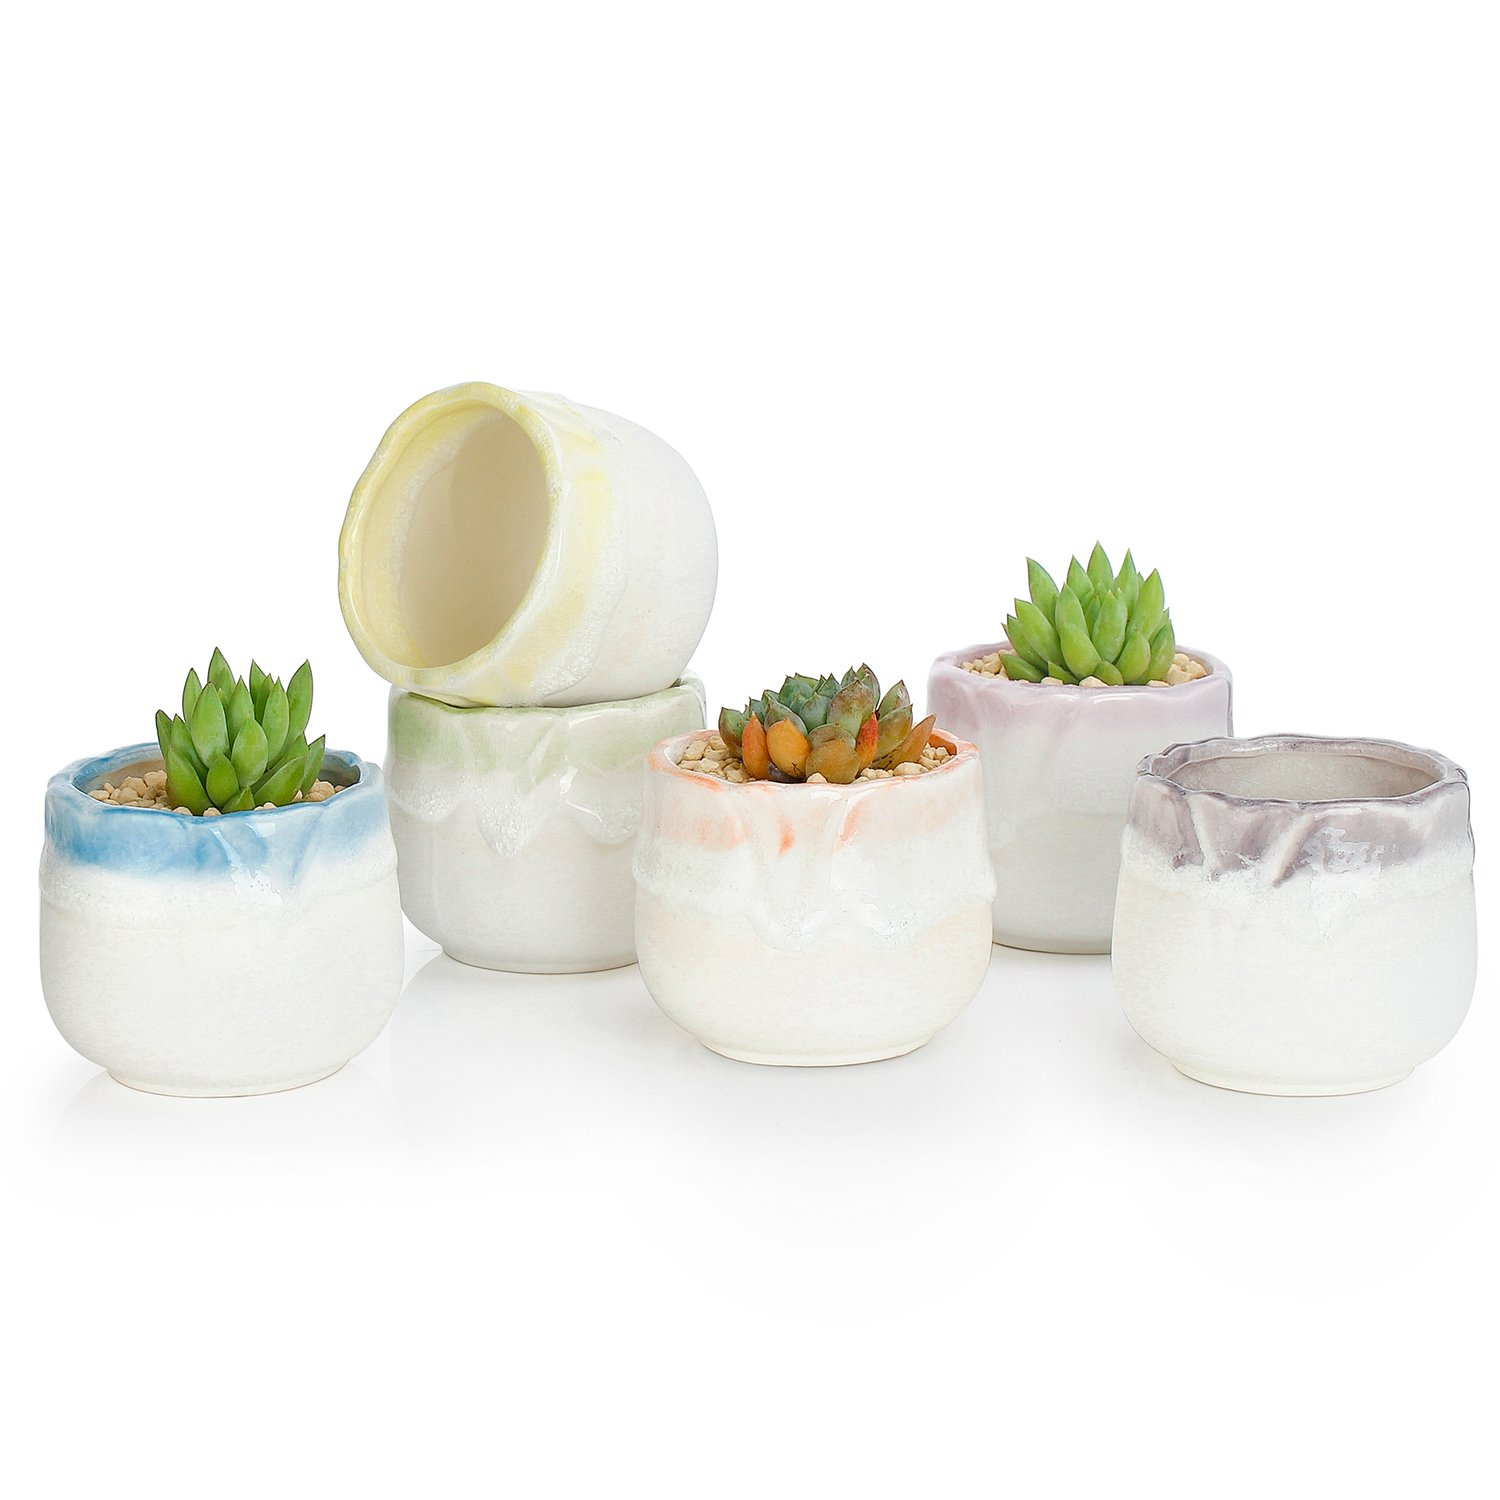 Greenaholics Succulent Plant Pots   2.4 Inch Flowing Glaze Ceramic Pots, Small Cactus Planters, With Drainage Hole, Six Colors, Set Of 6 by Greenaholics